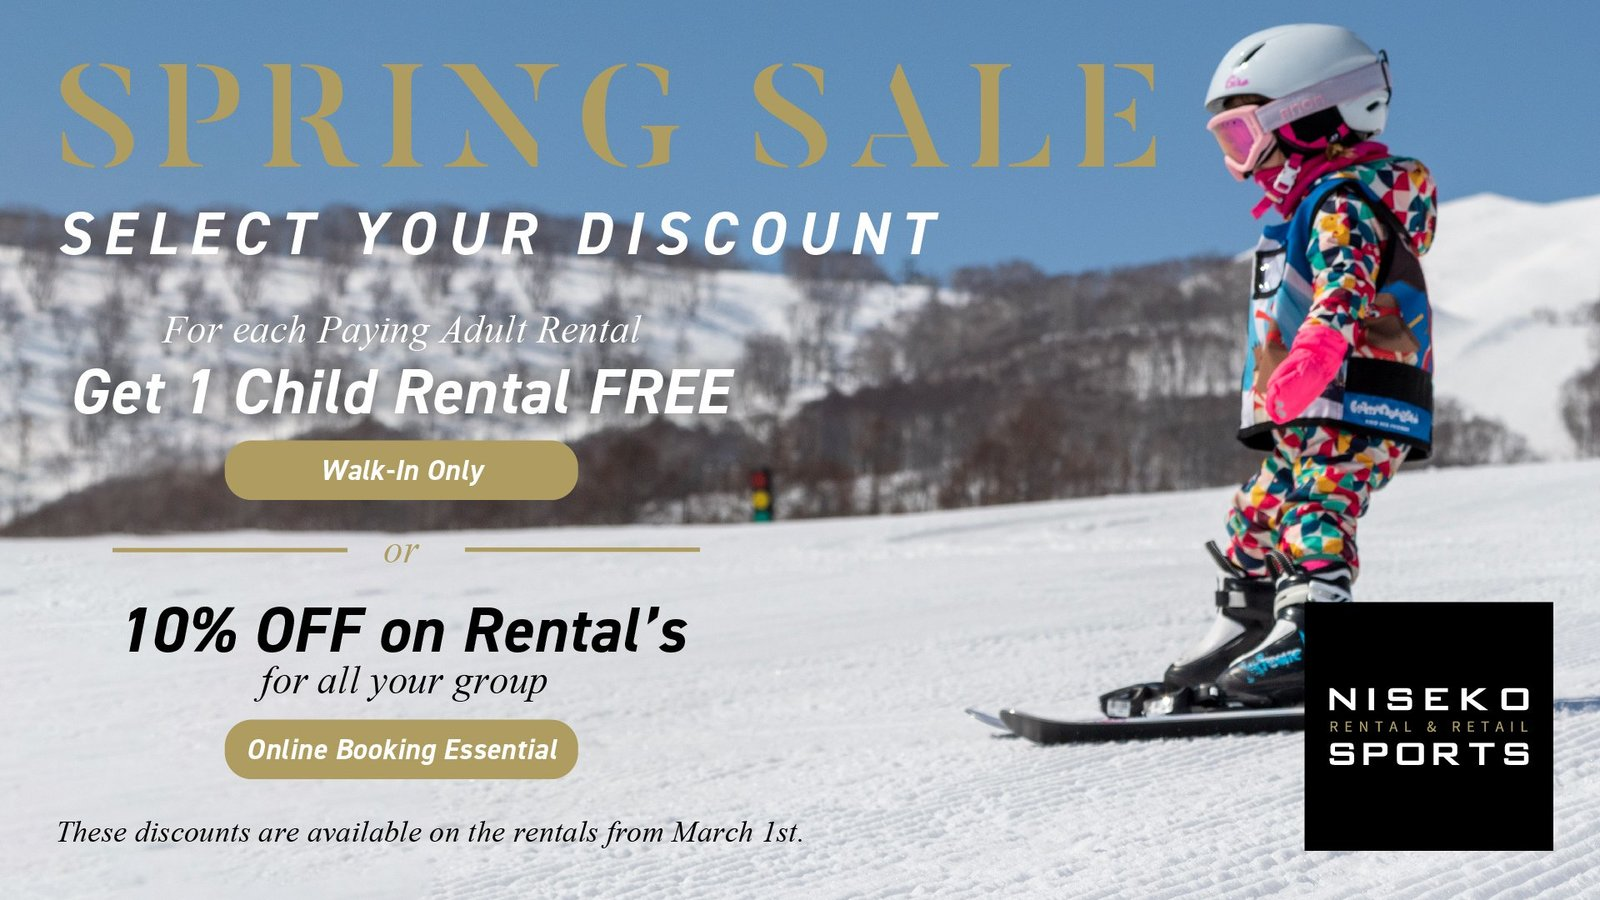 niseko-sports-spring-sale